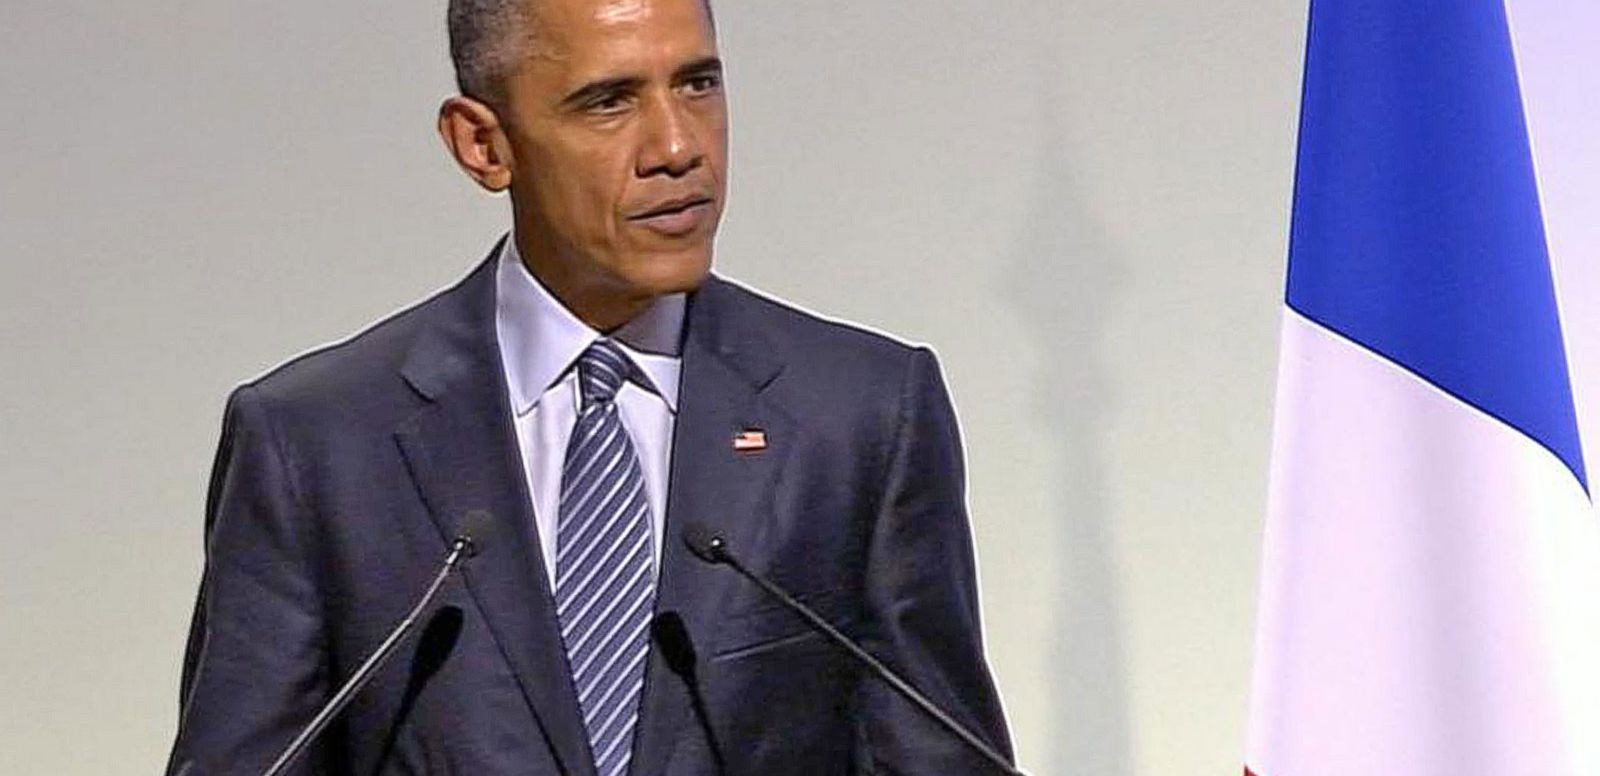 VIDEO: President Obama Addresses Terrorism In Paris Speech